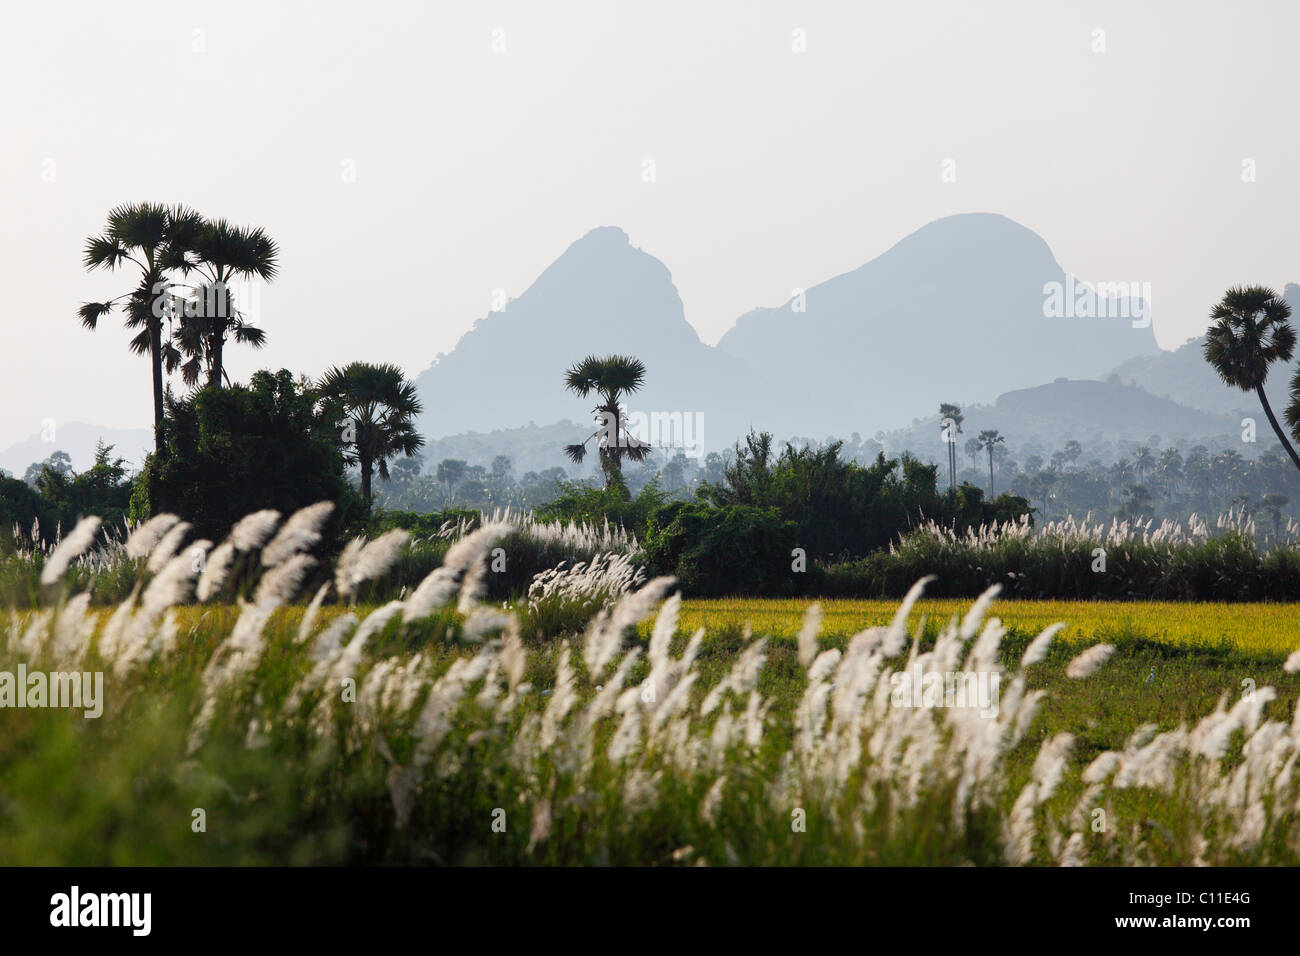 Western Ghats, Courtallam, Tamil Nadu, Tamilnadu, South India, India, Asia - Stock Image